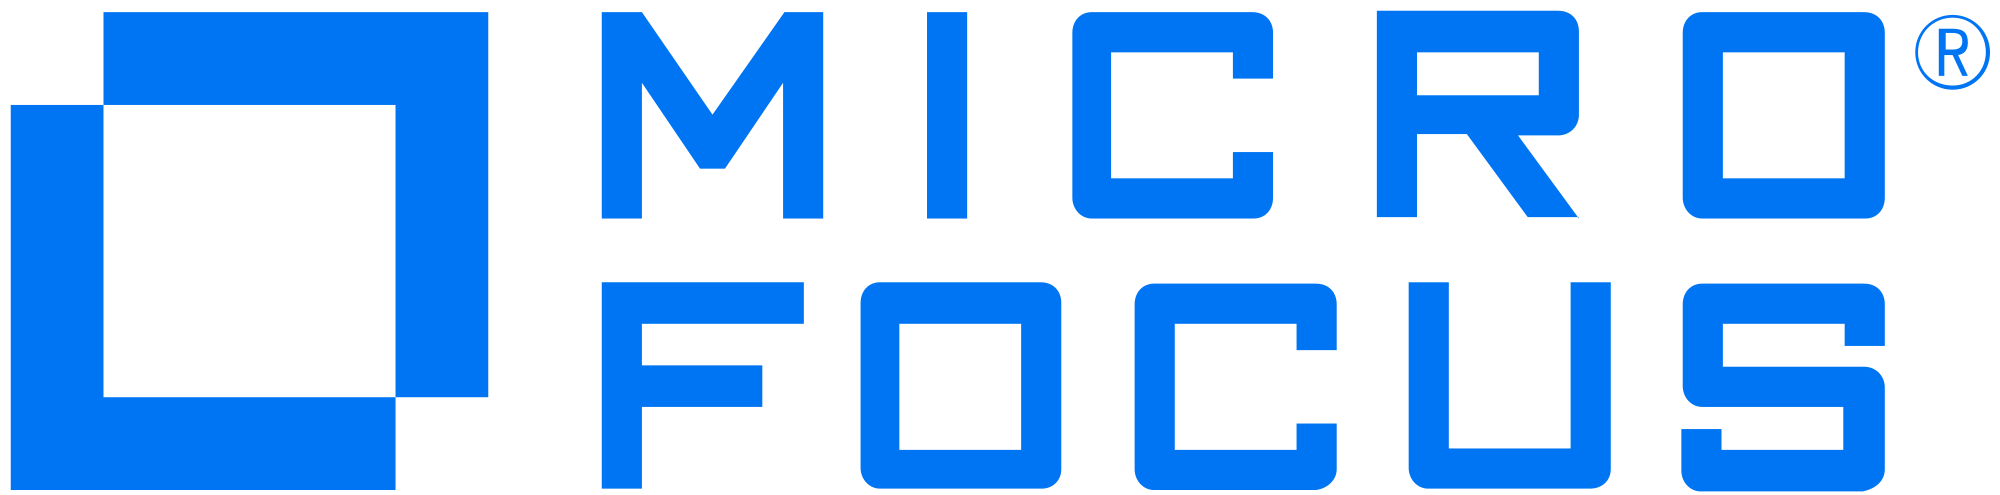 Content Manager by Micro Focus logo